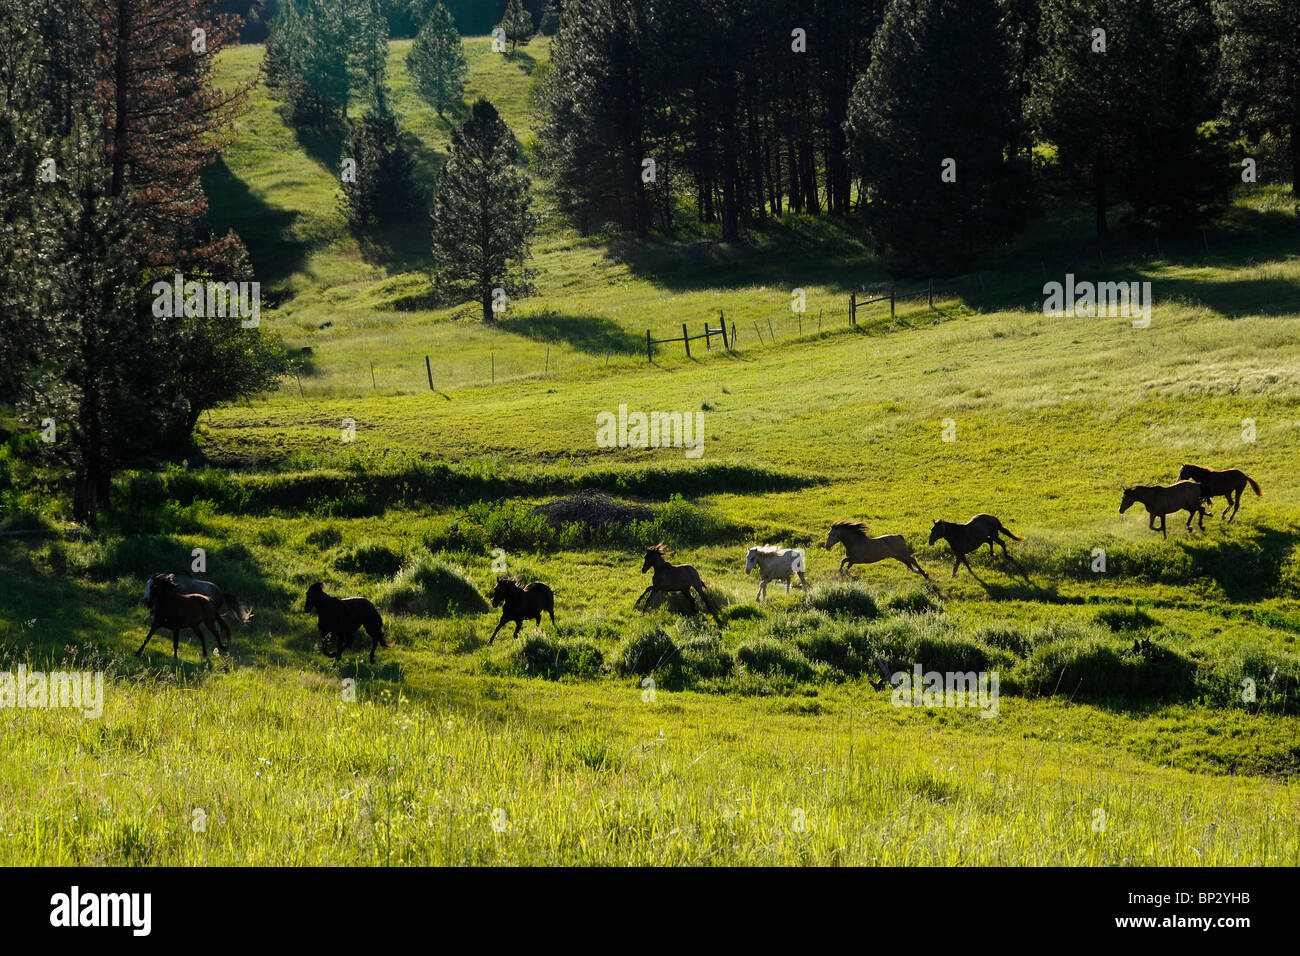 Herd of Lusitano horses running in the wilderness.  Oregon, U.S.A. Stock Photo